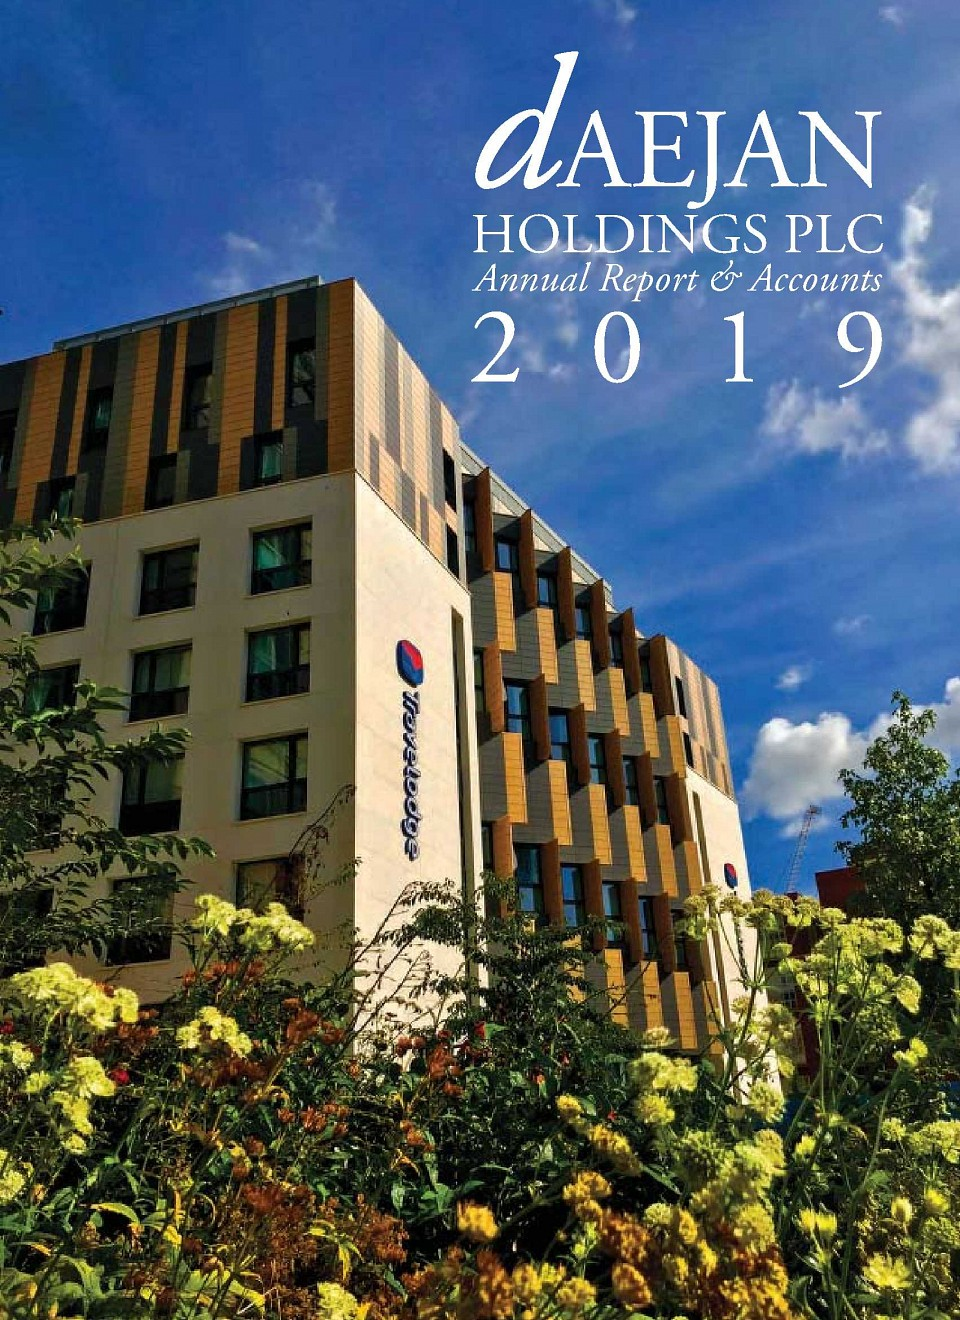 View our Annual Report & Accounts 2019